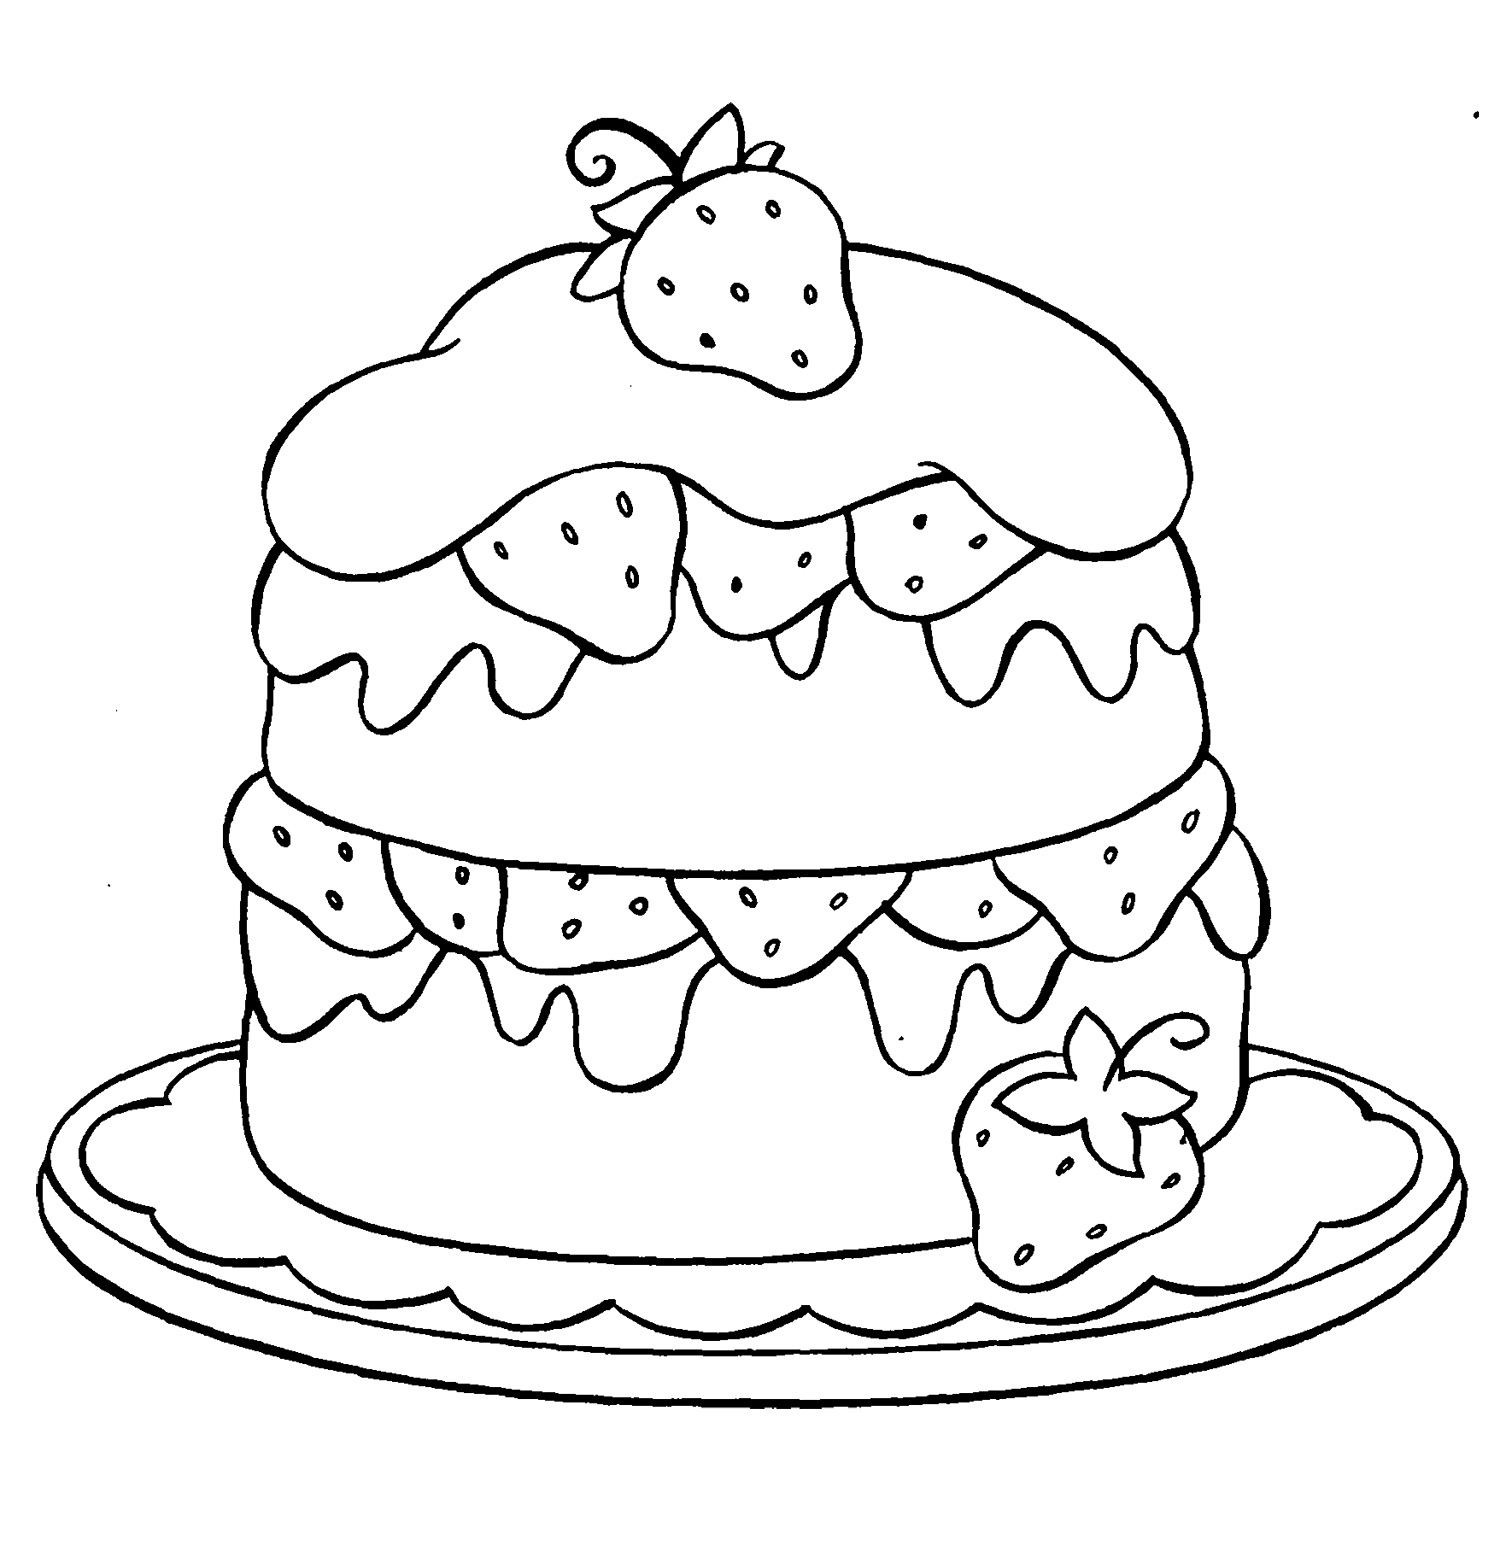 Cute Cake Drawing At Getdrawings Com Free For Personal Use Cute